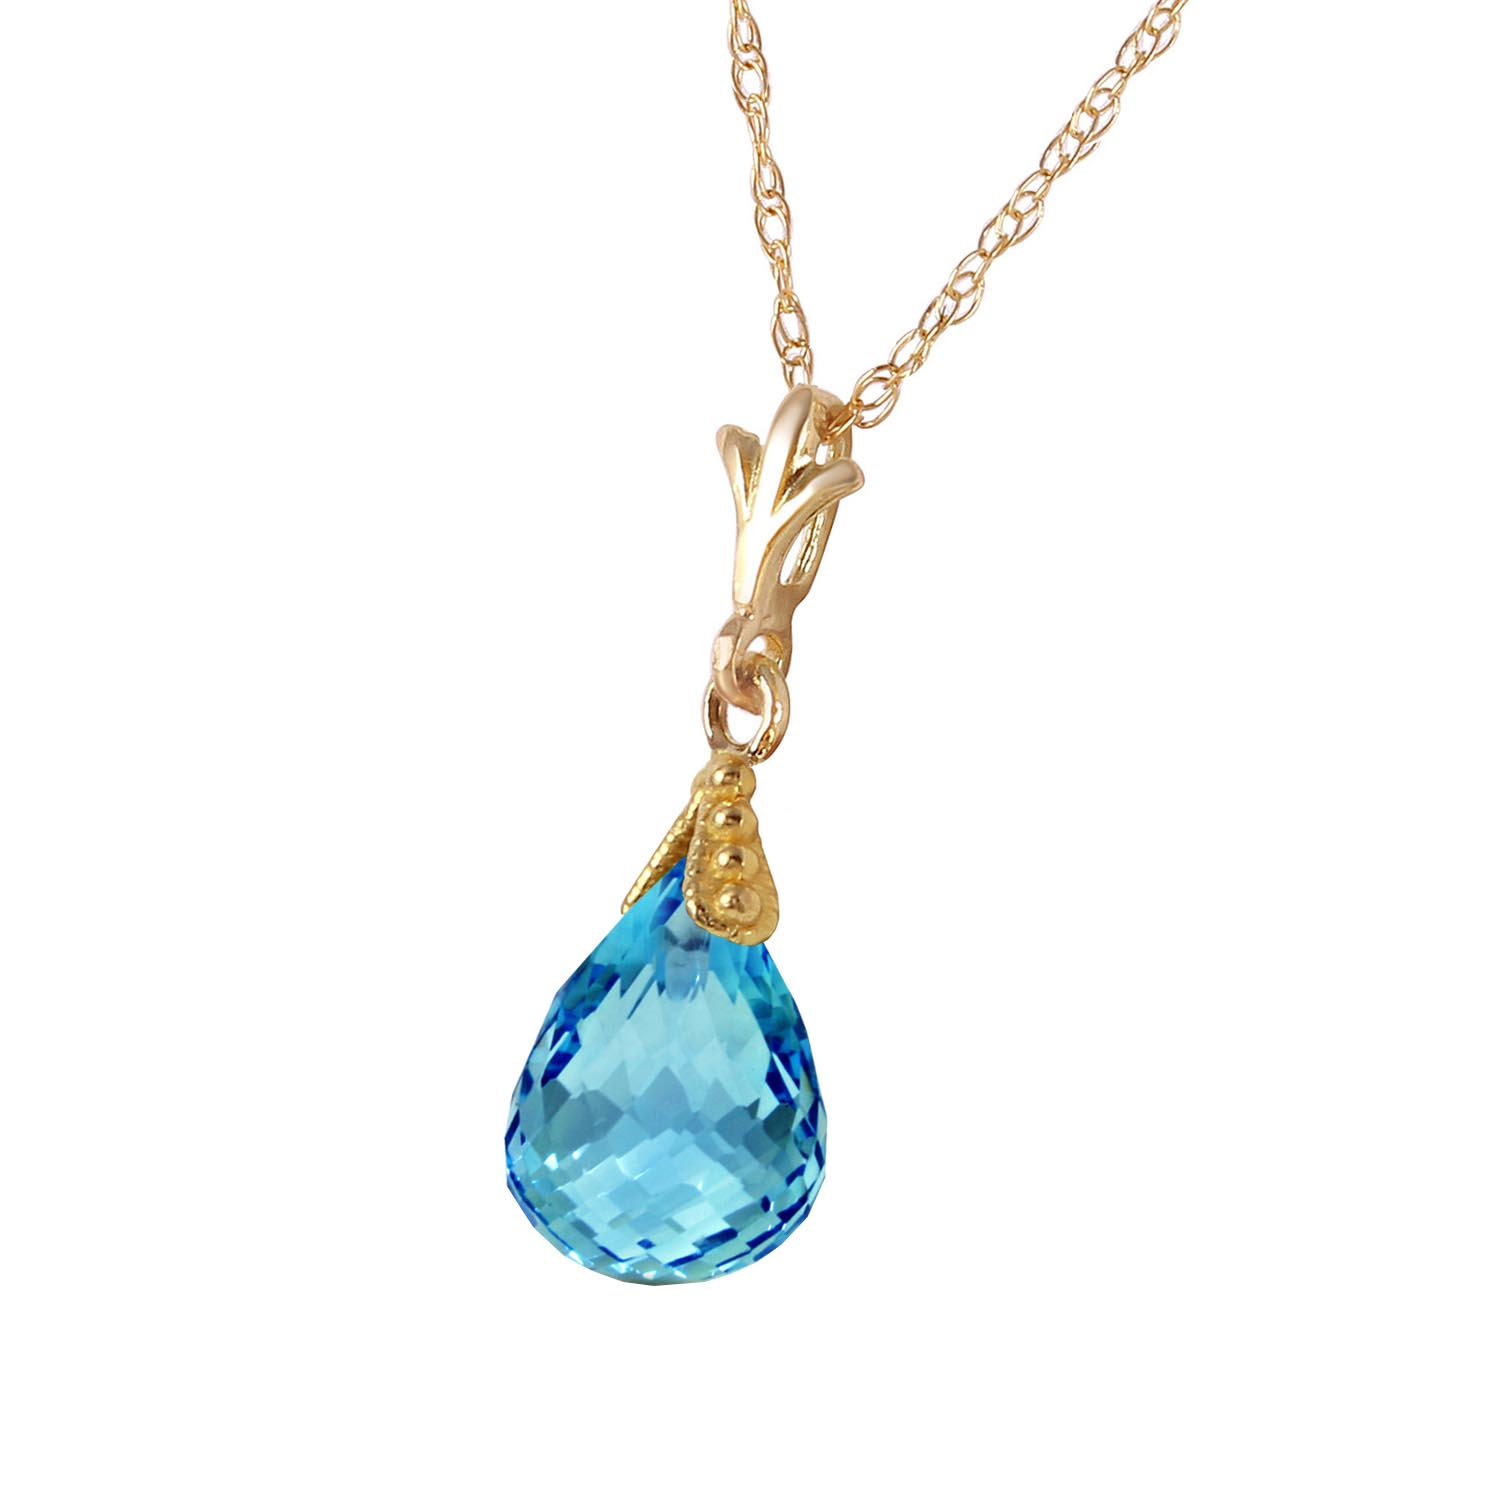 Blue Topaz Droplet Briolette Pendant Necklace 2.5ct in 9ct Gold